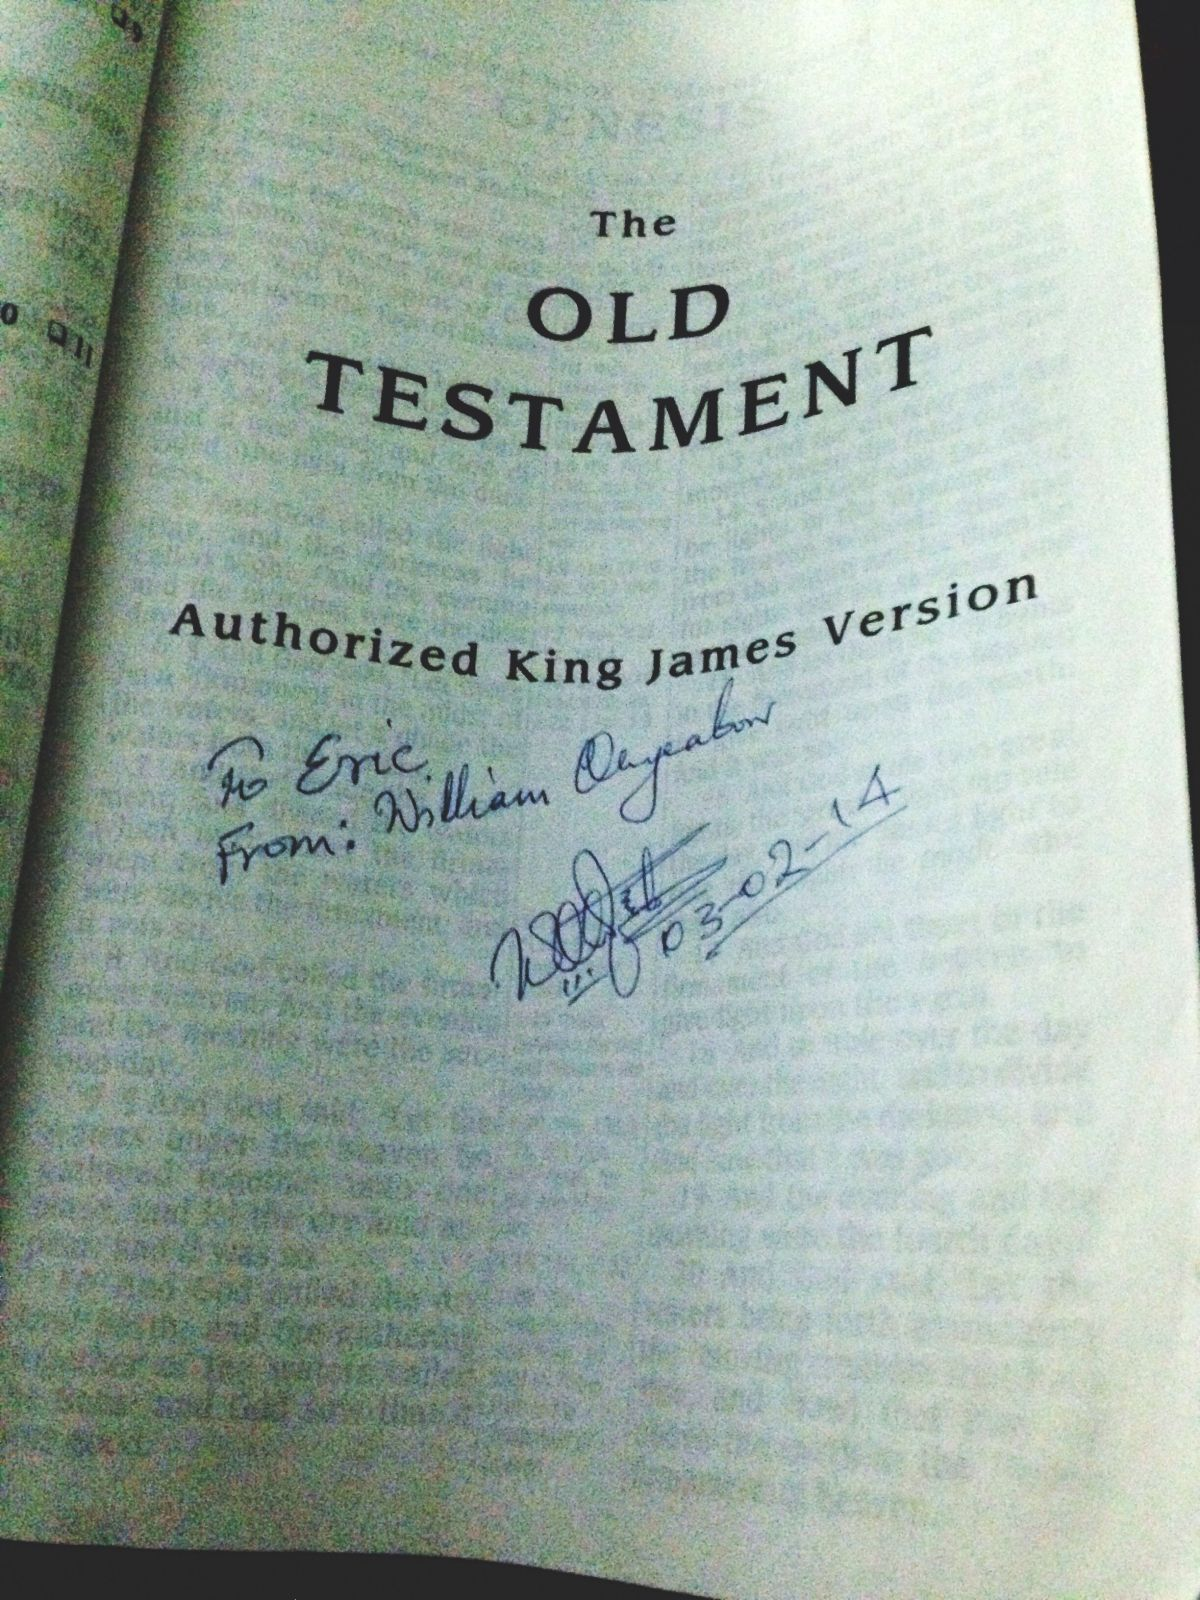 Signed Bible from William to Eric.